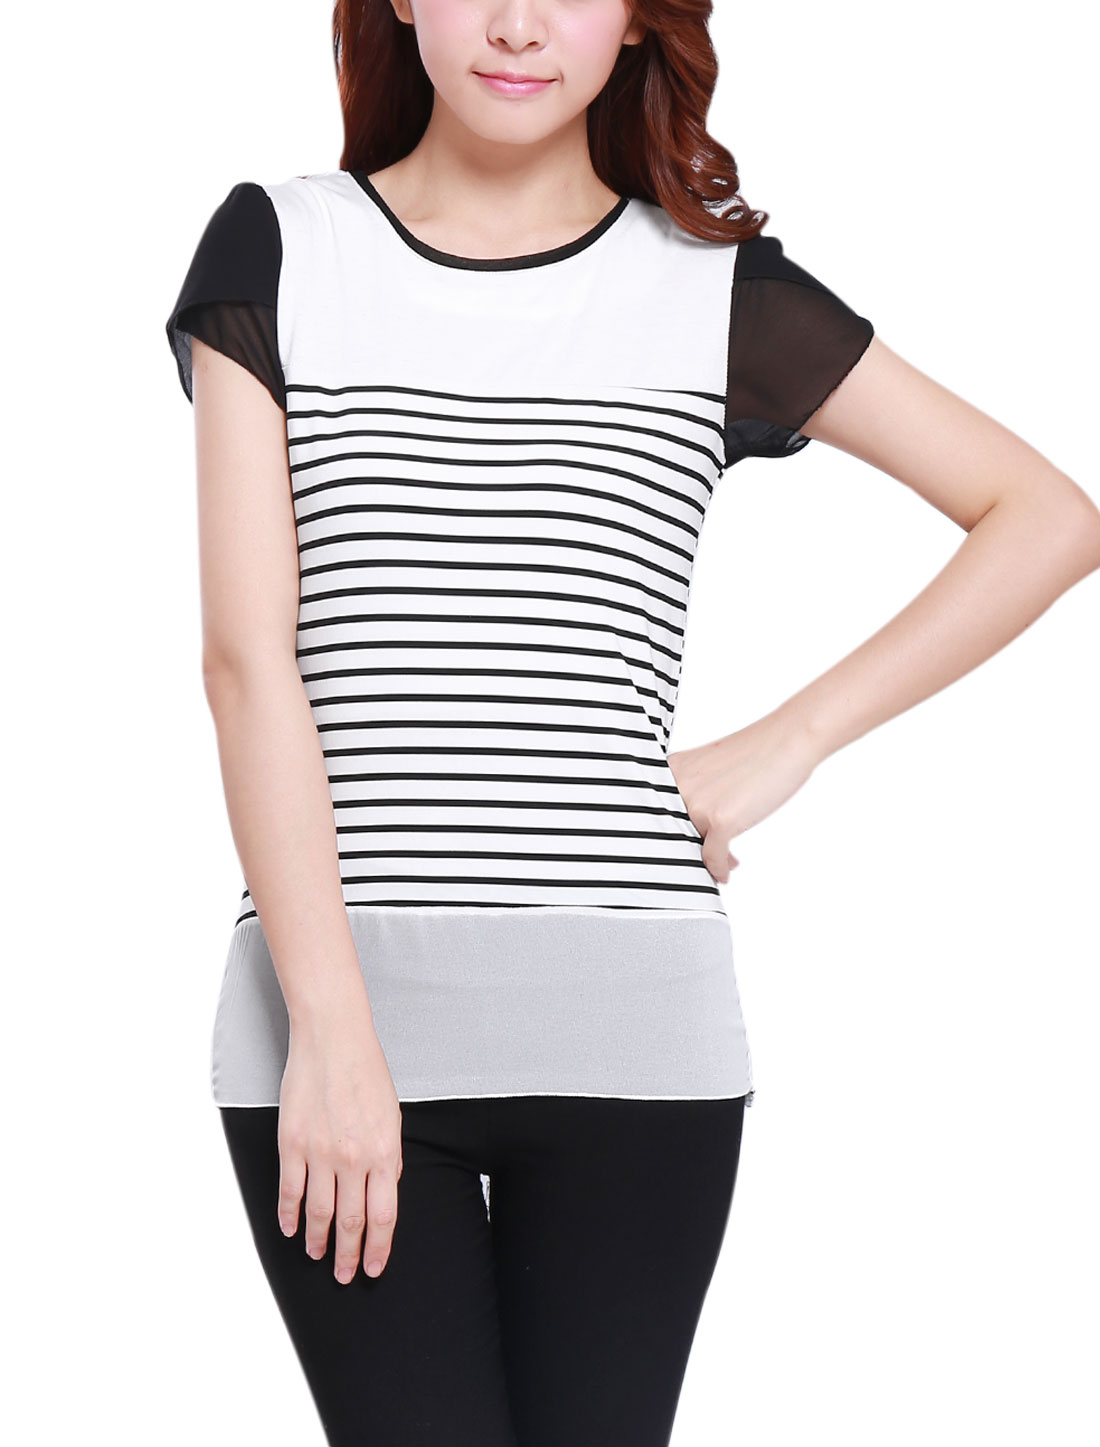 Lady Round Neck Patal Sleeve Stripes Chiffon Panel Tee White Black XS